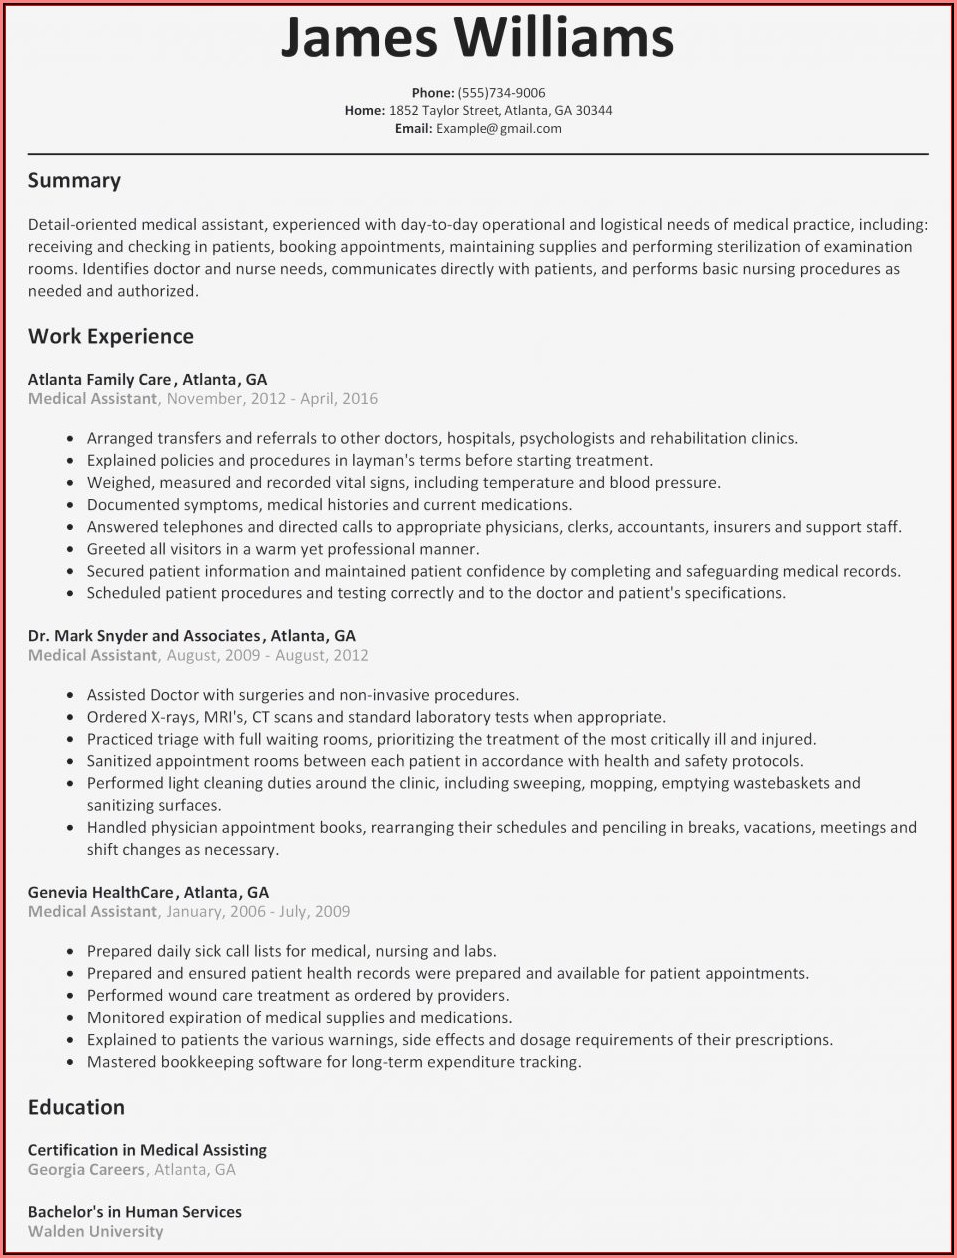 Best Free Resume Maker Online